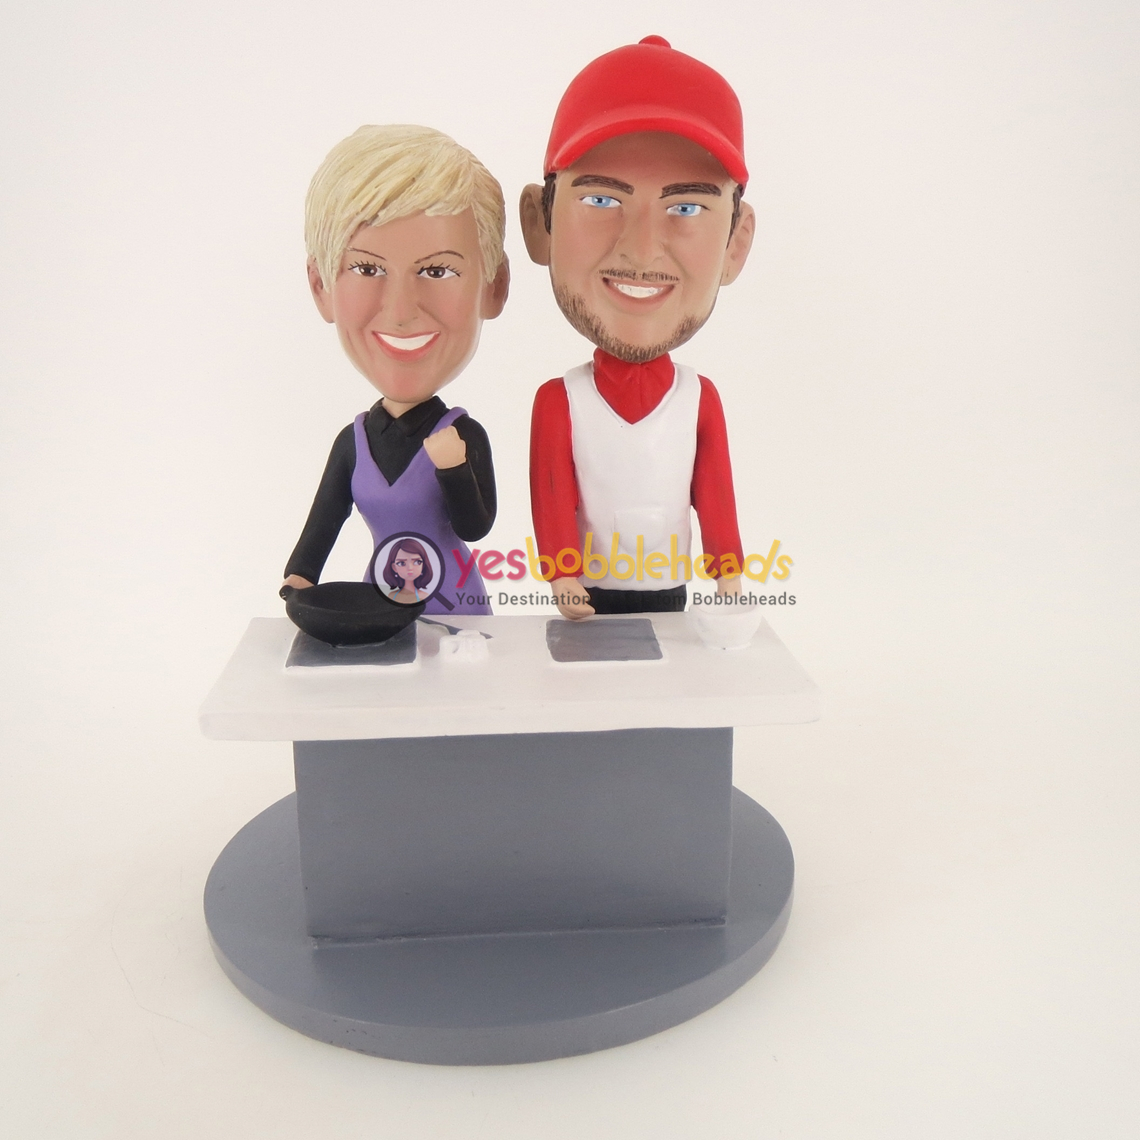 Picture of Custom Bobblehead Doll: Cooking Couple